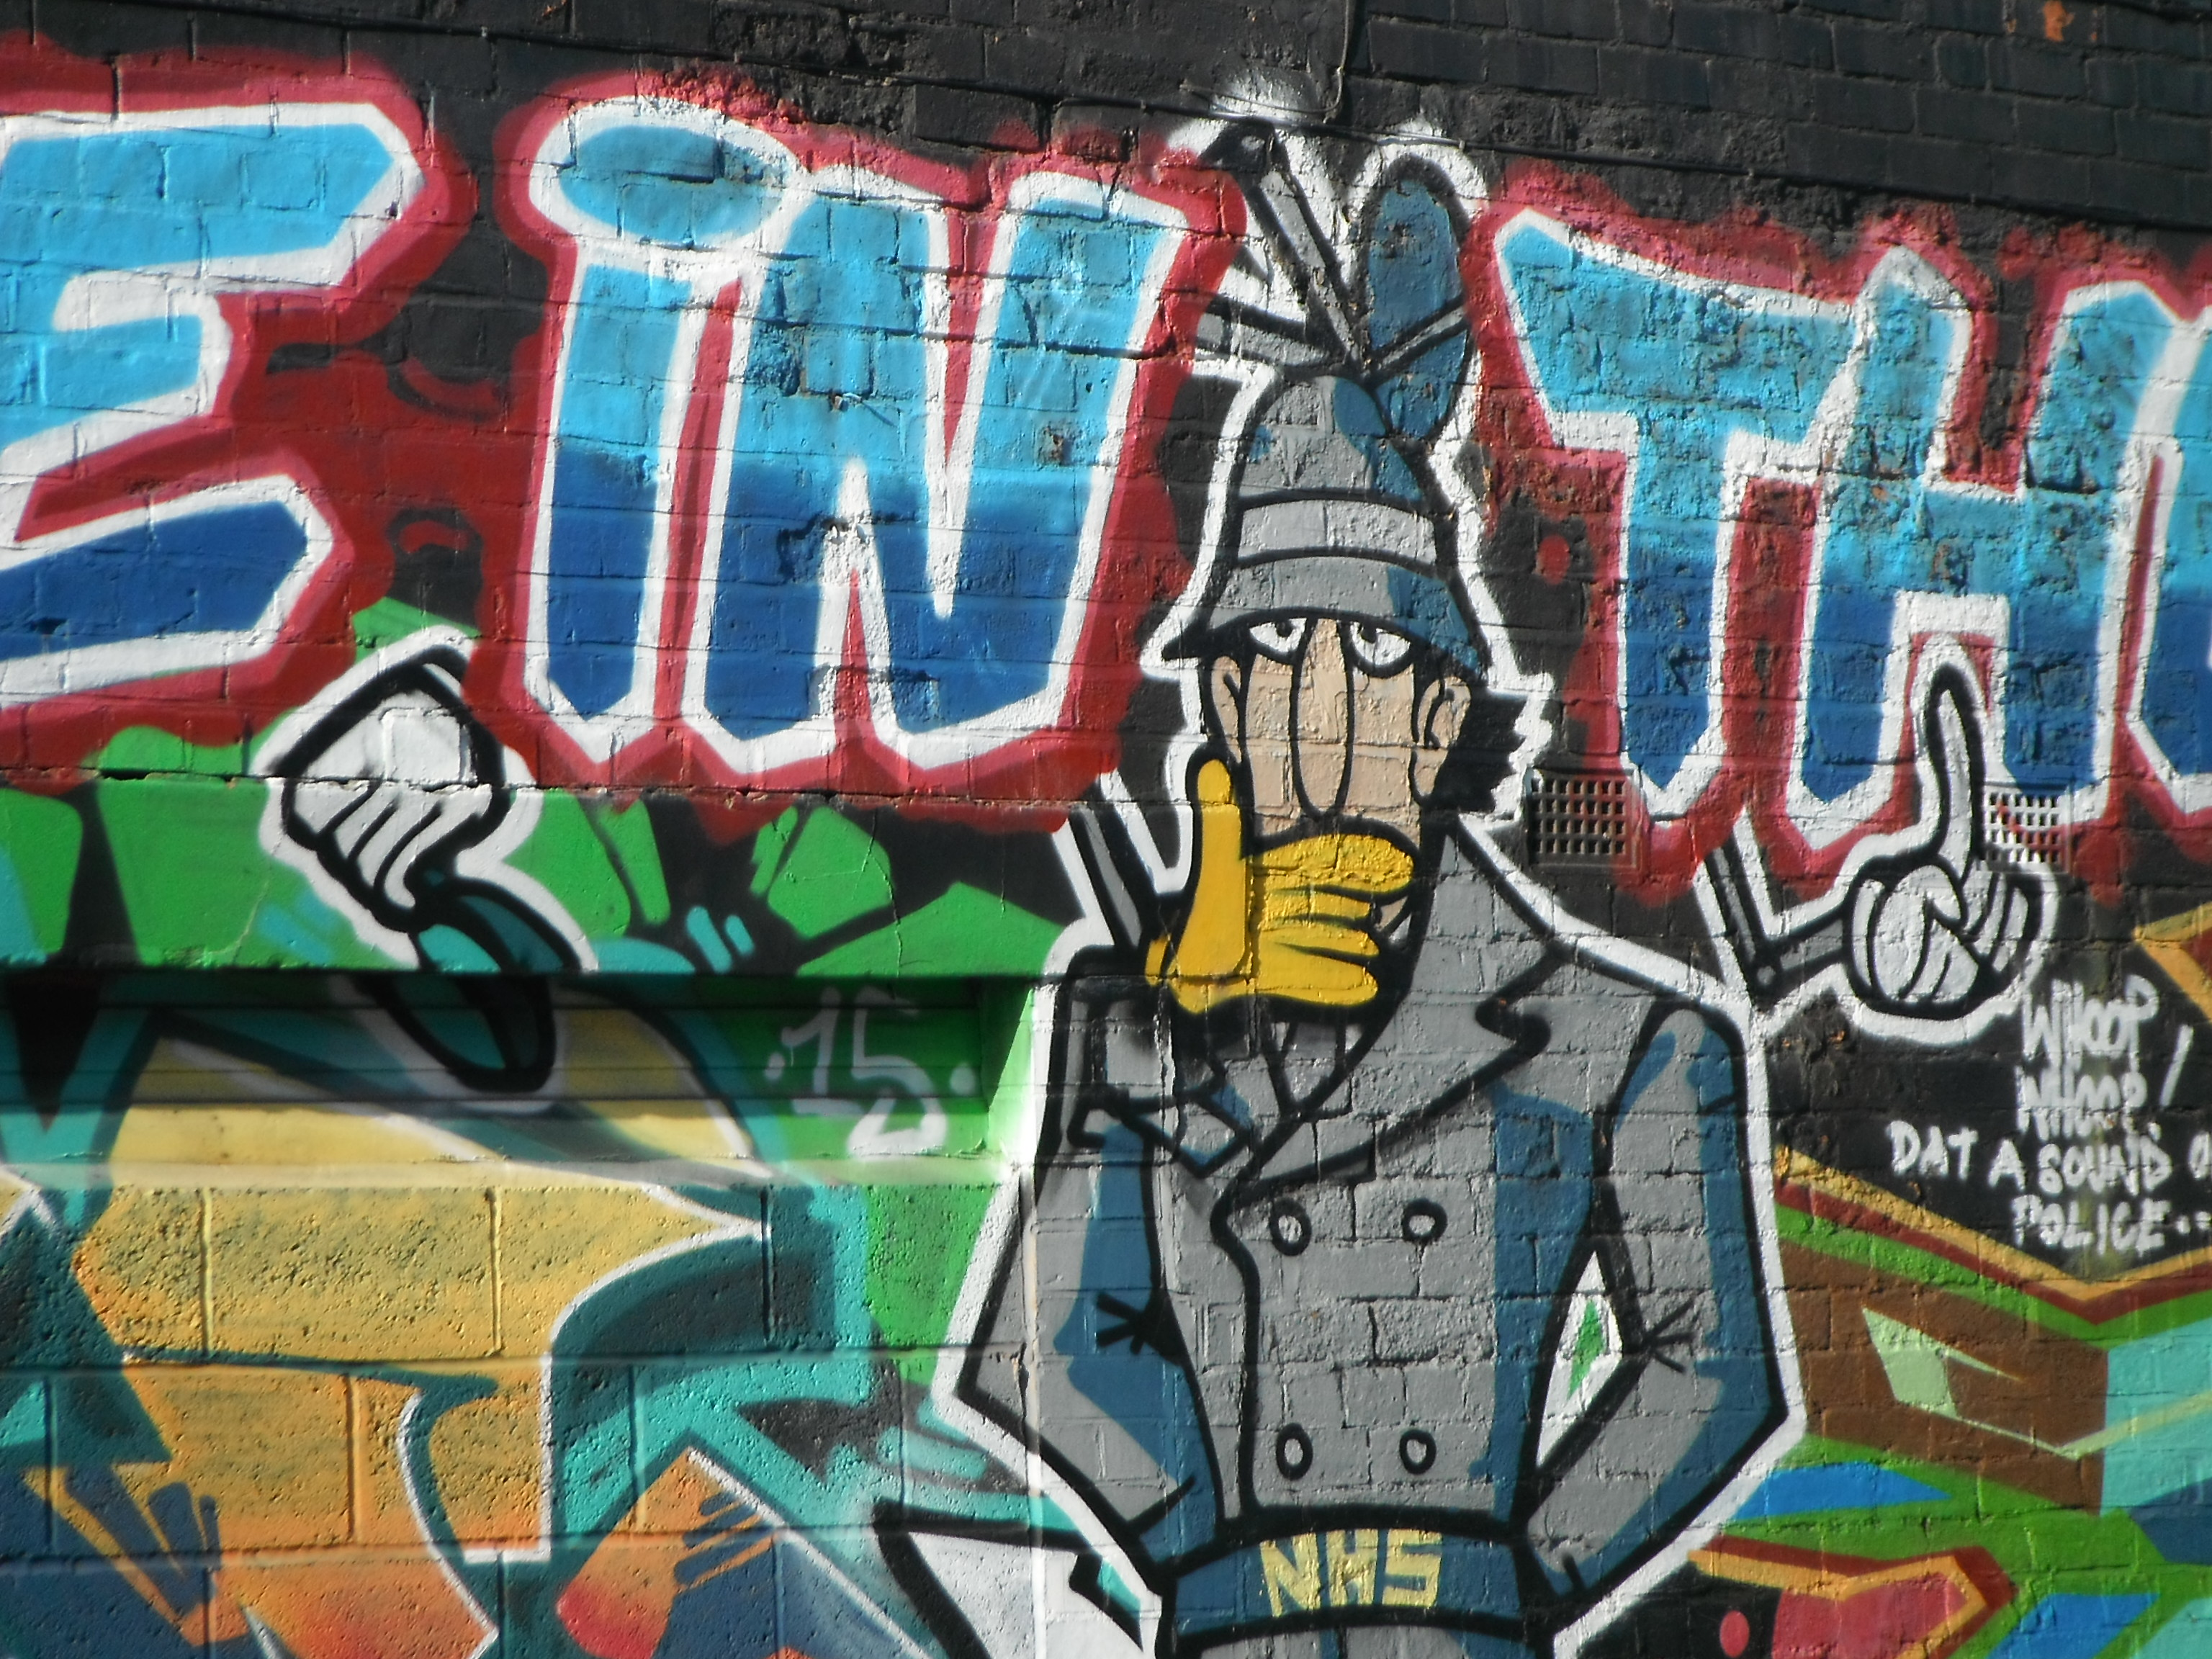 Photo taken by me – The Inspector Gadget Mural, Digbeth, Birmingham.